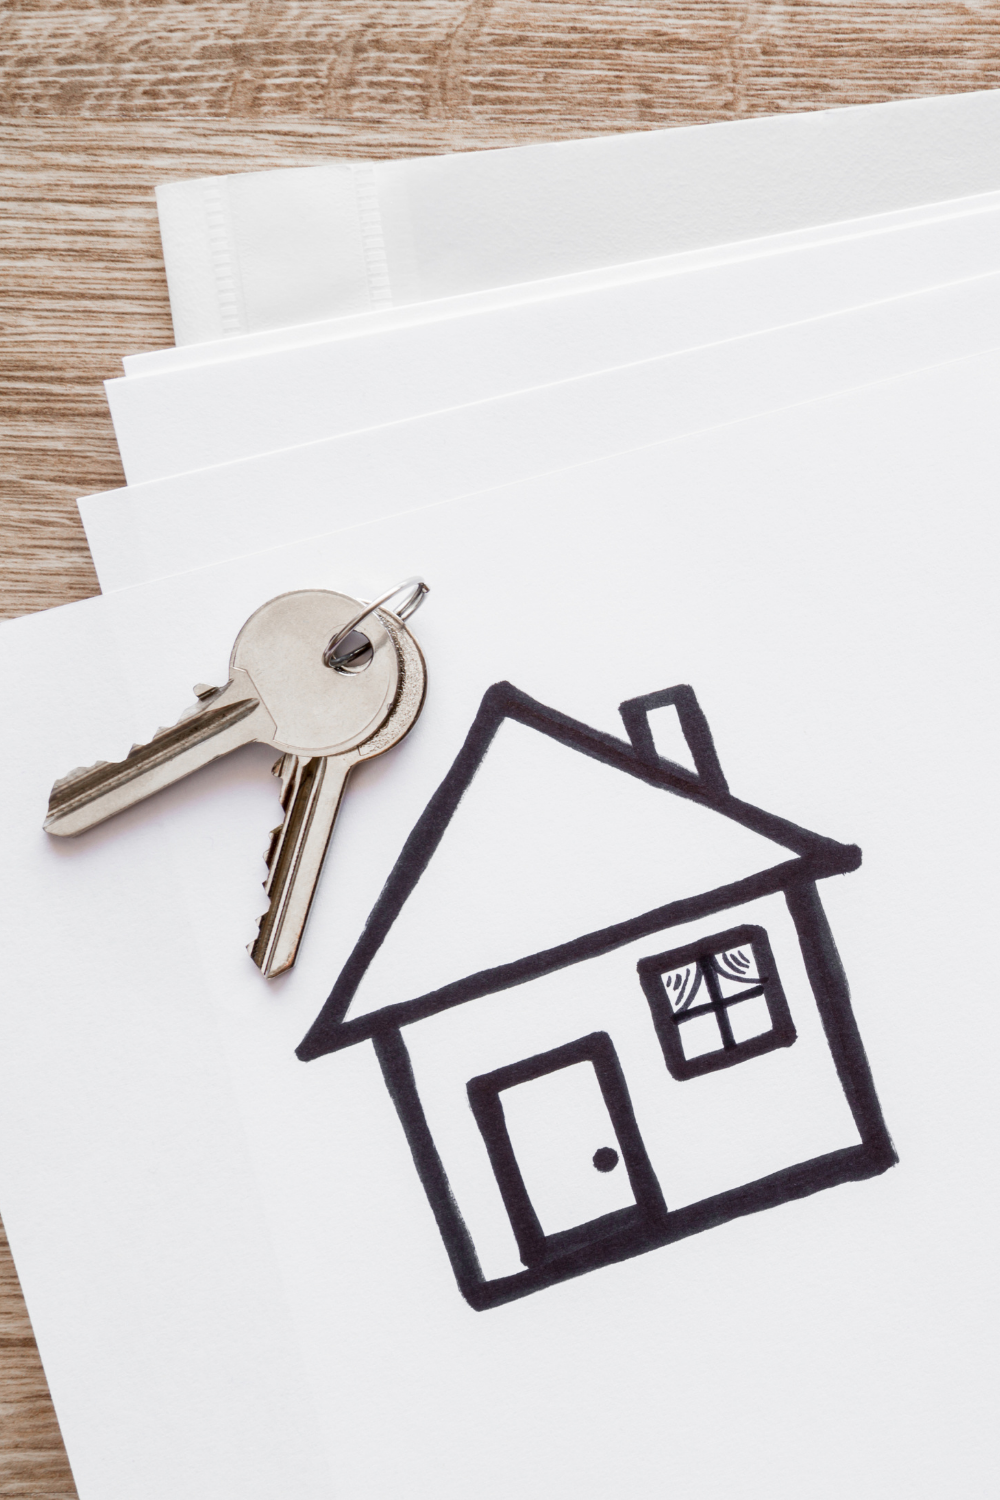 Things to consider before becoming a landlord